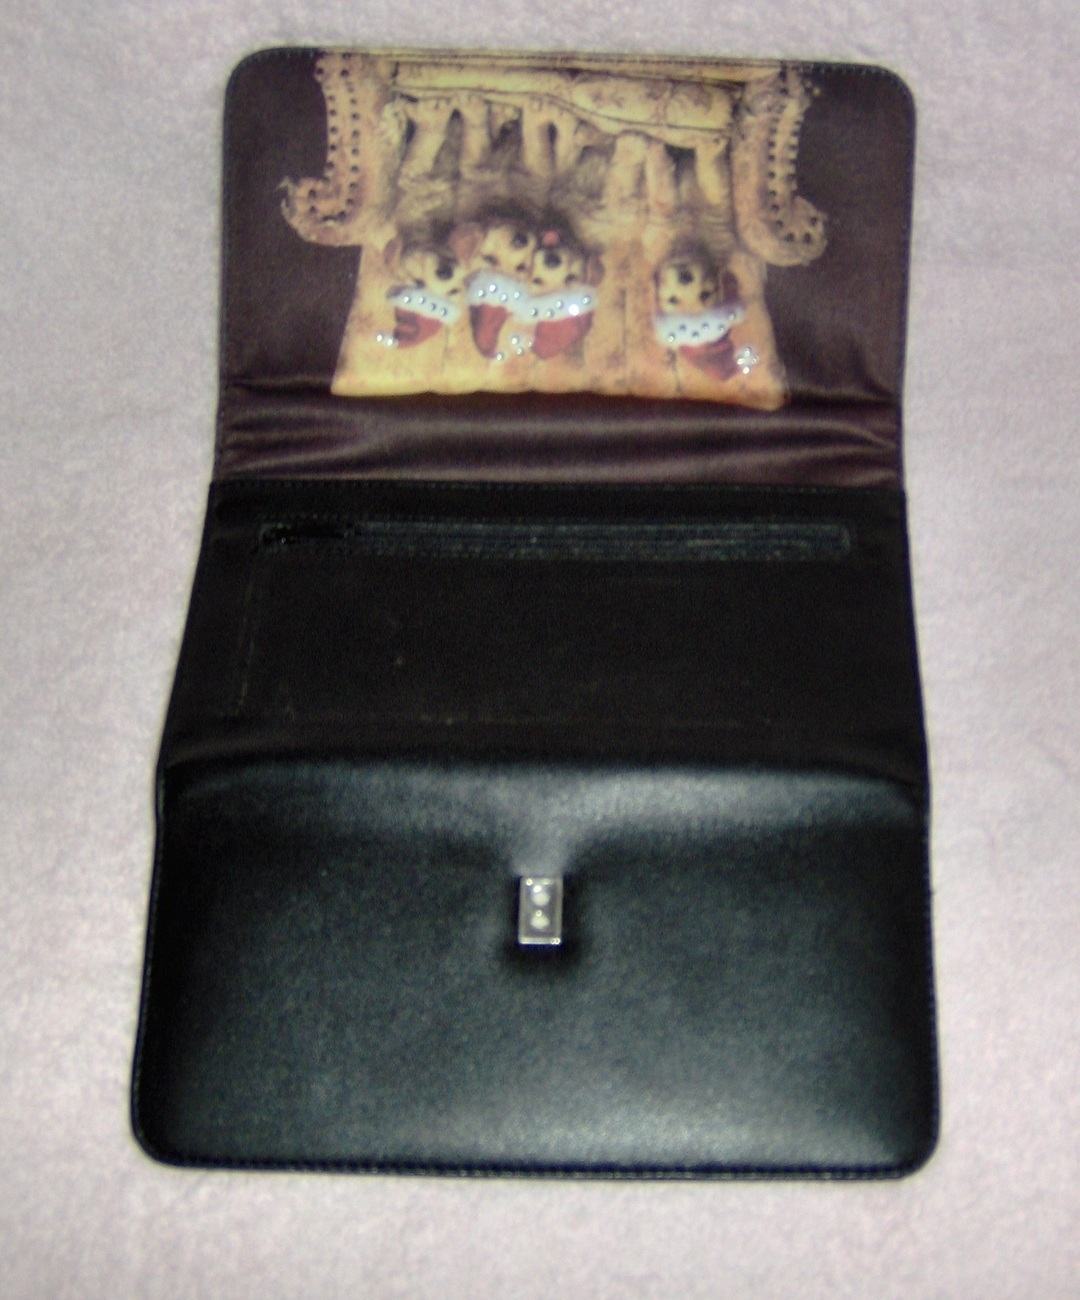 Golden_retriever_billfold_clutch_purse_santa_hats_3